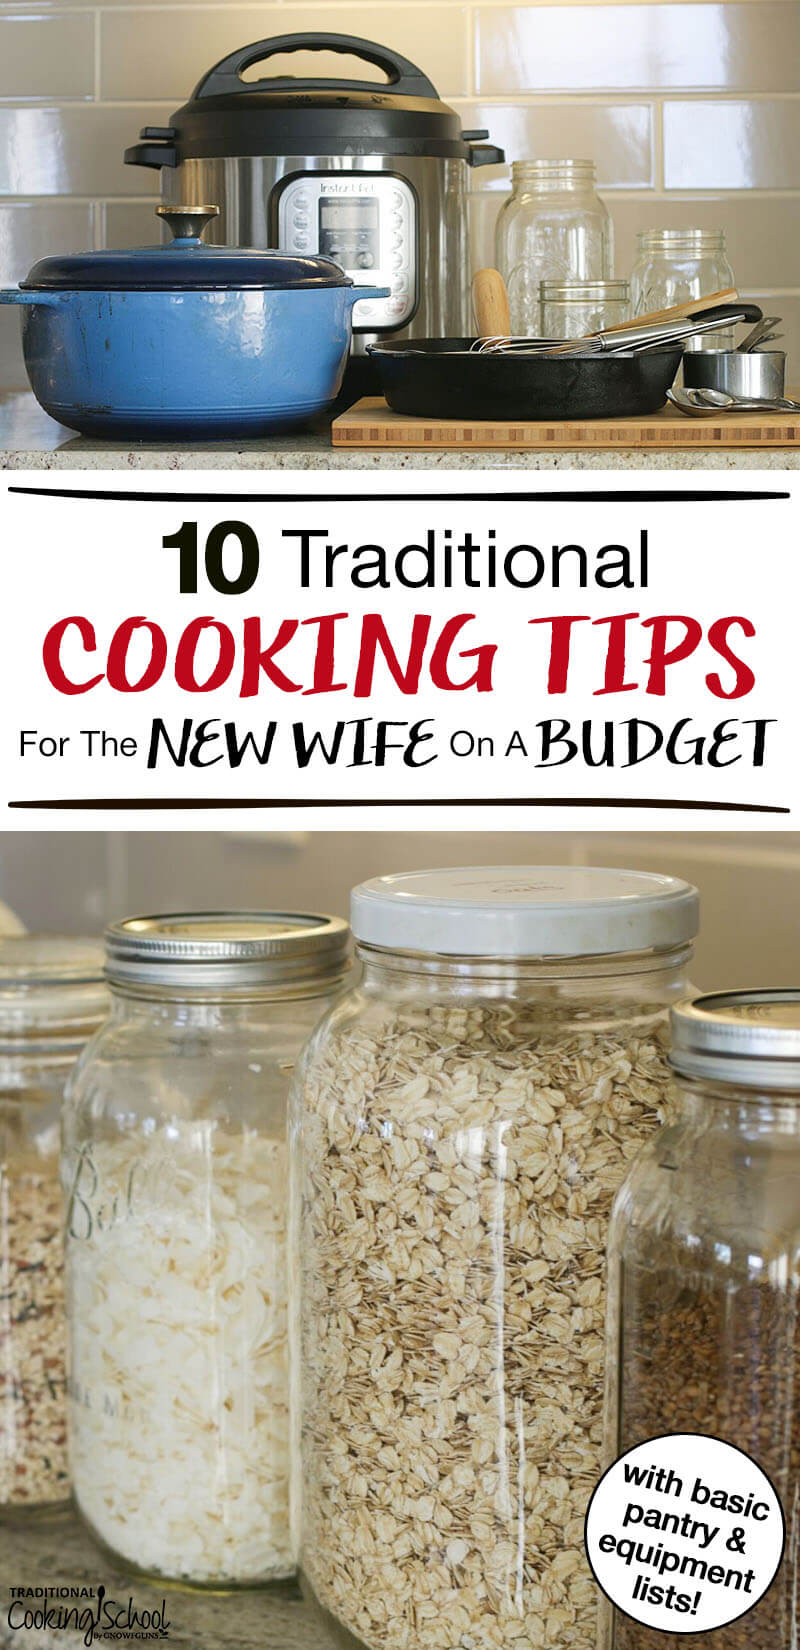 "photo collage of kitchen tools and pantry items, including an Instant Pot, Dutch oven, and Mason jars of shredded coconut and oats, with text overlay: ""10 Traditional Cooking Tips For The New Wife On A Budget"""""